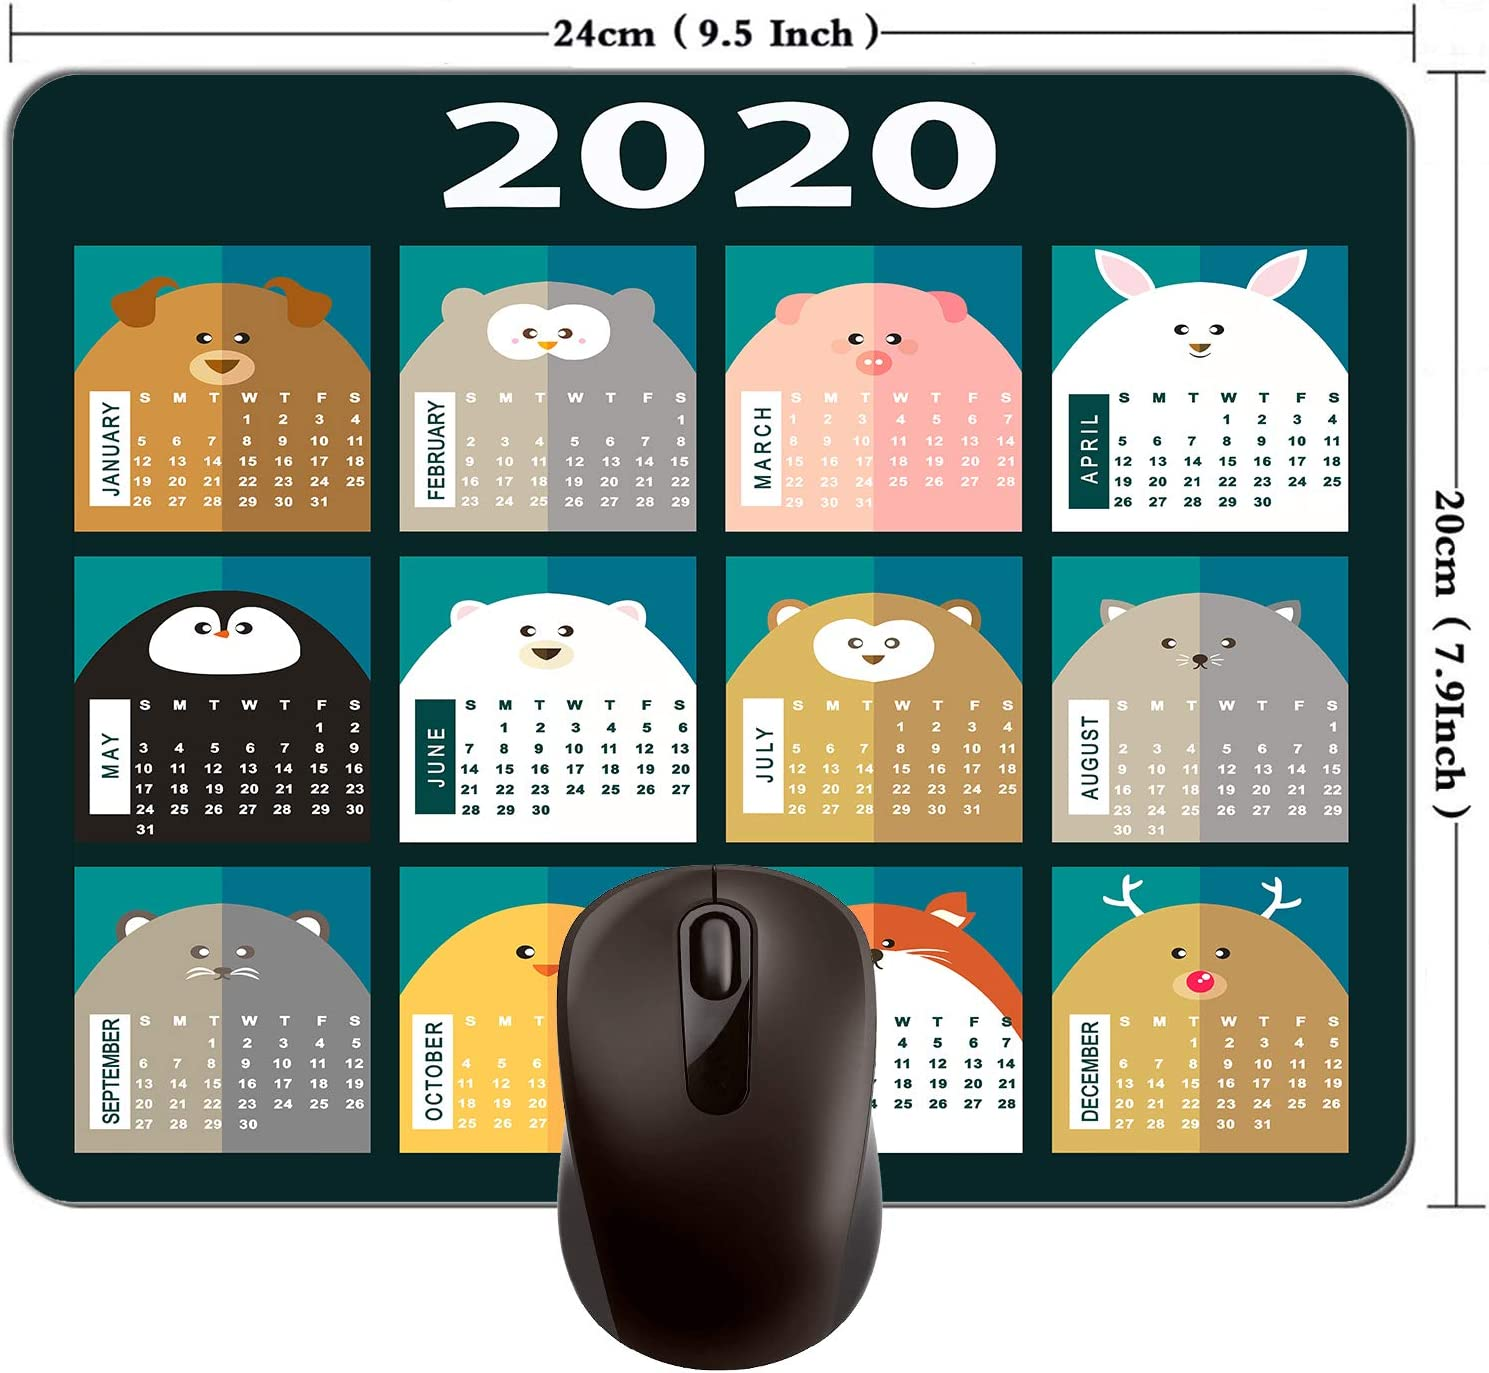 2020 Calendar Mouse Pad Computer Accessories Mouse Pad Game Mouse Pad Office Mouse Pad Rectangular Non-Slip Neoprene Mouse Pad 240mm x 200mm x 3mm